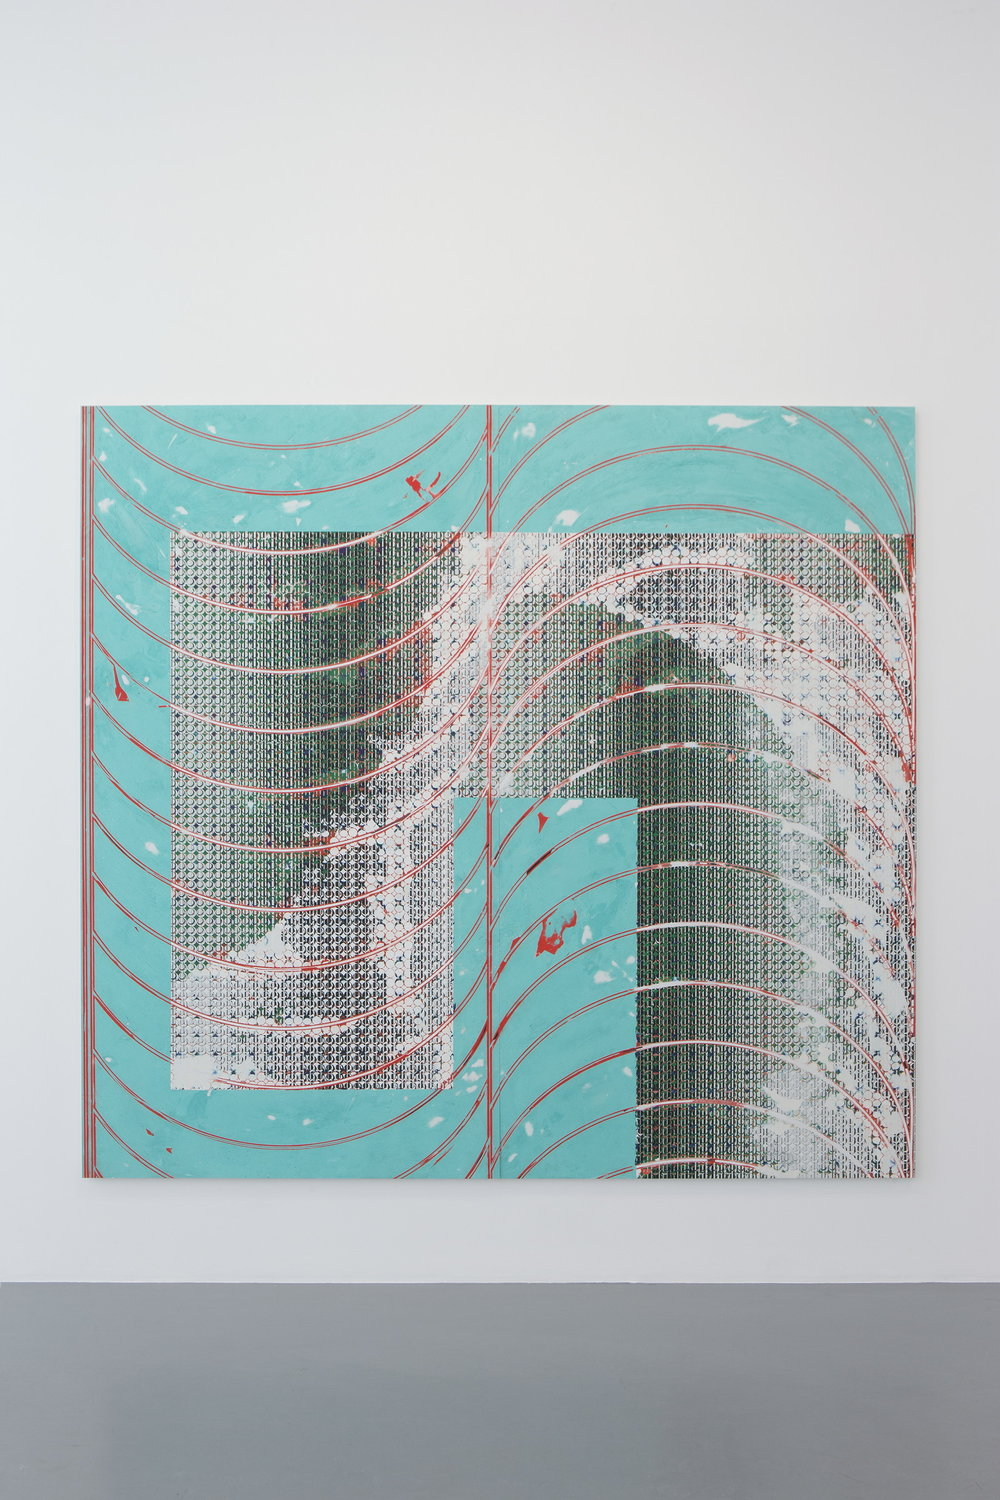 Nicolas Roggy,  Untitled,  2014, gesso, acrylic medium, pigment, acrylic and silkscreen on PVC, 87 x 93.75 in.